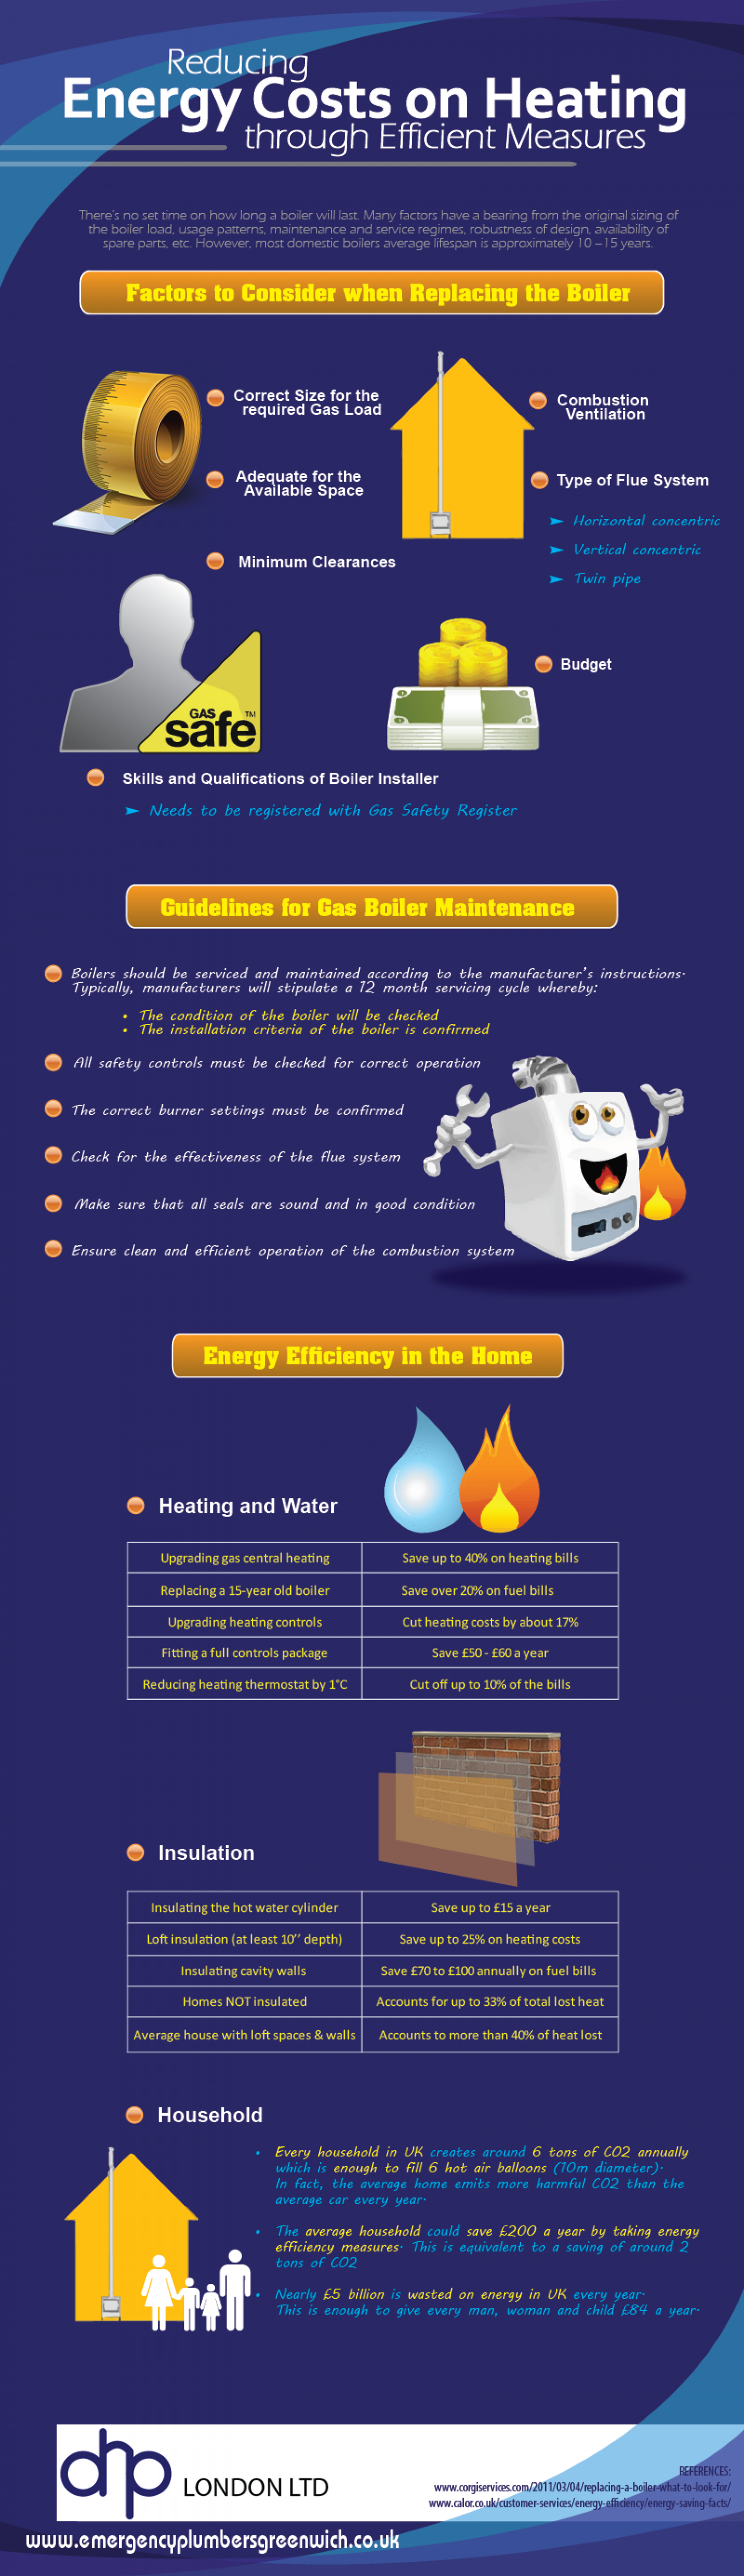 Reducing Energy Costs on Heating through Efficient Measures Infographic